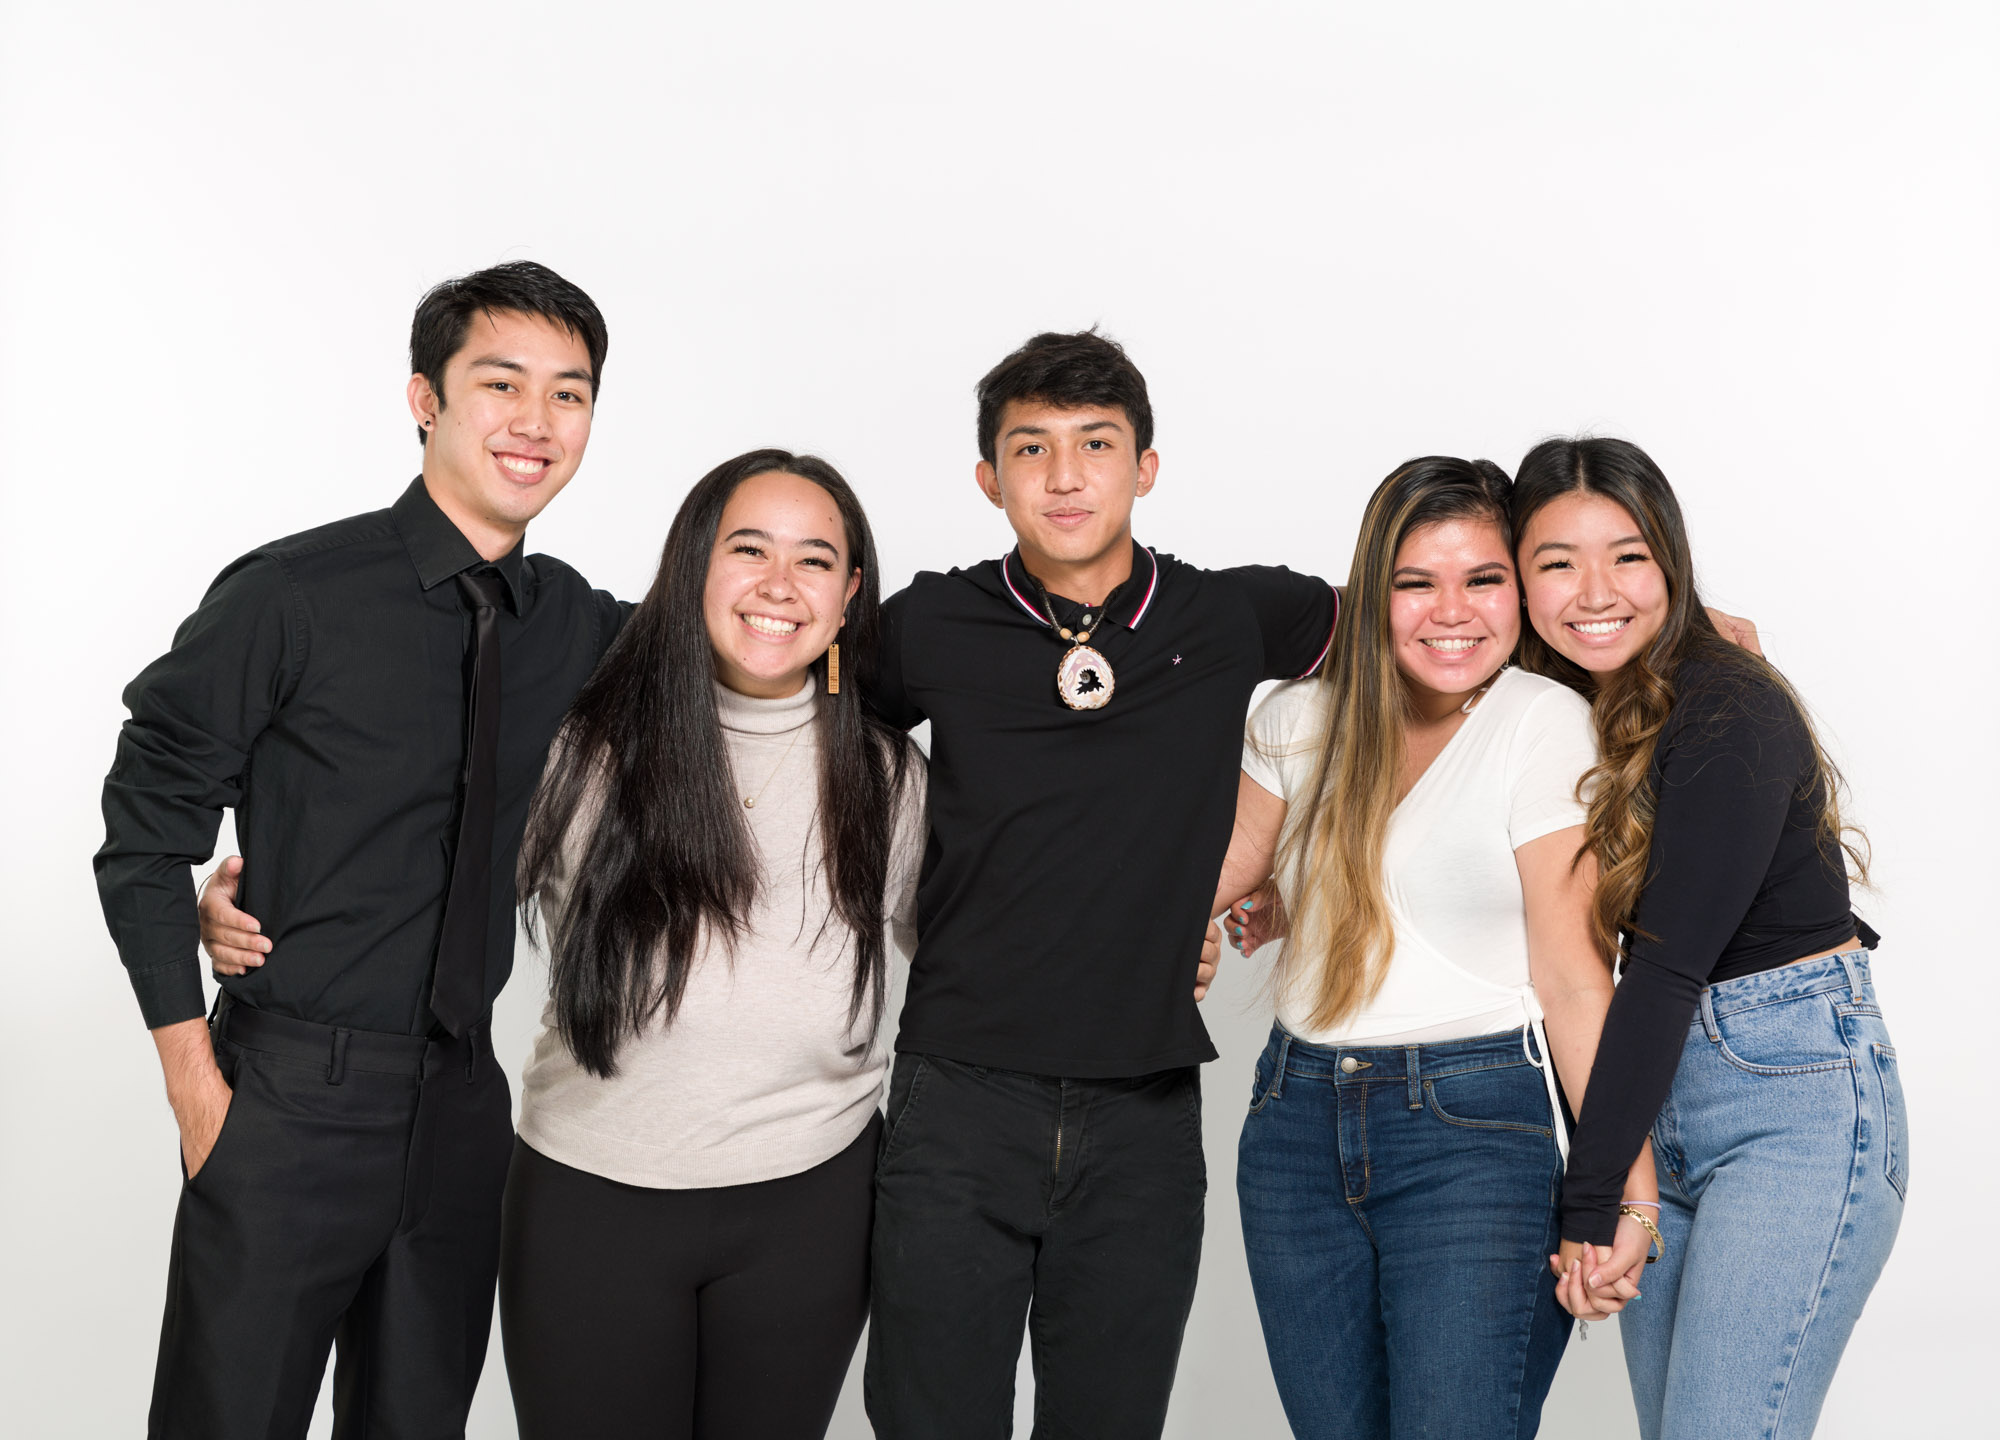 A modern color photograph of five young adults standing, posing to have their photo taken. Their arms are linked, and two hold hands.